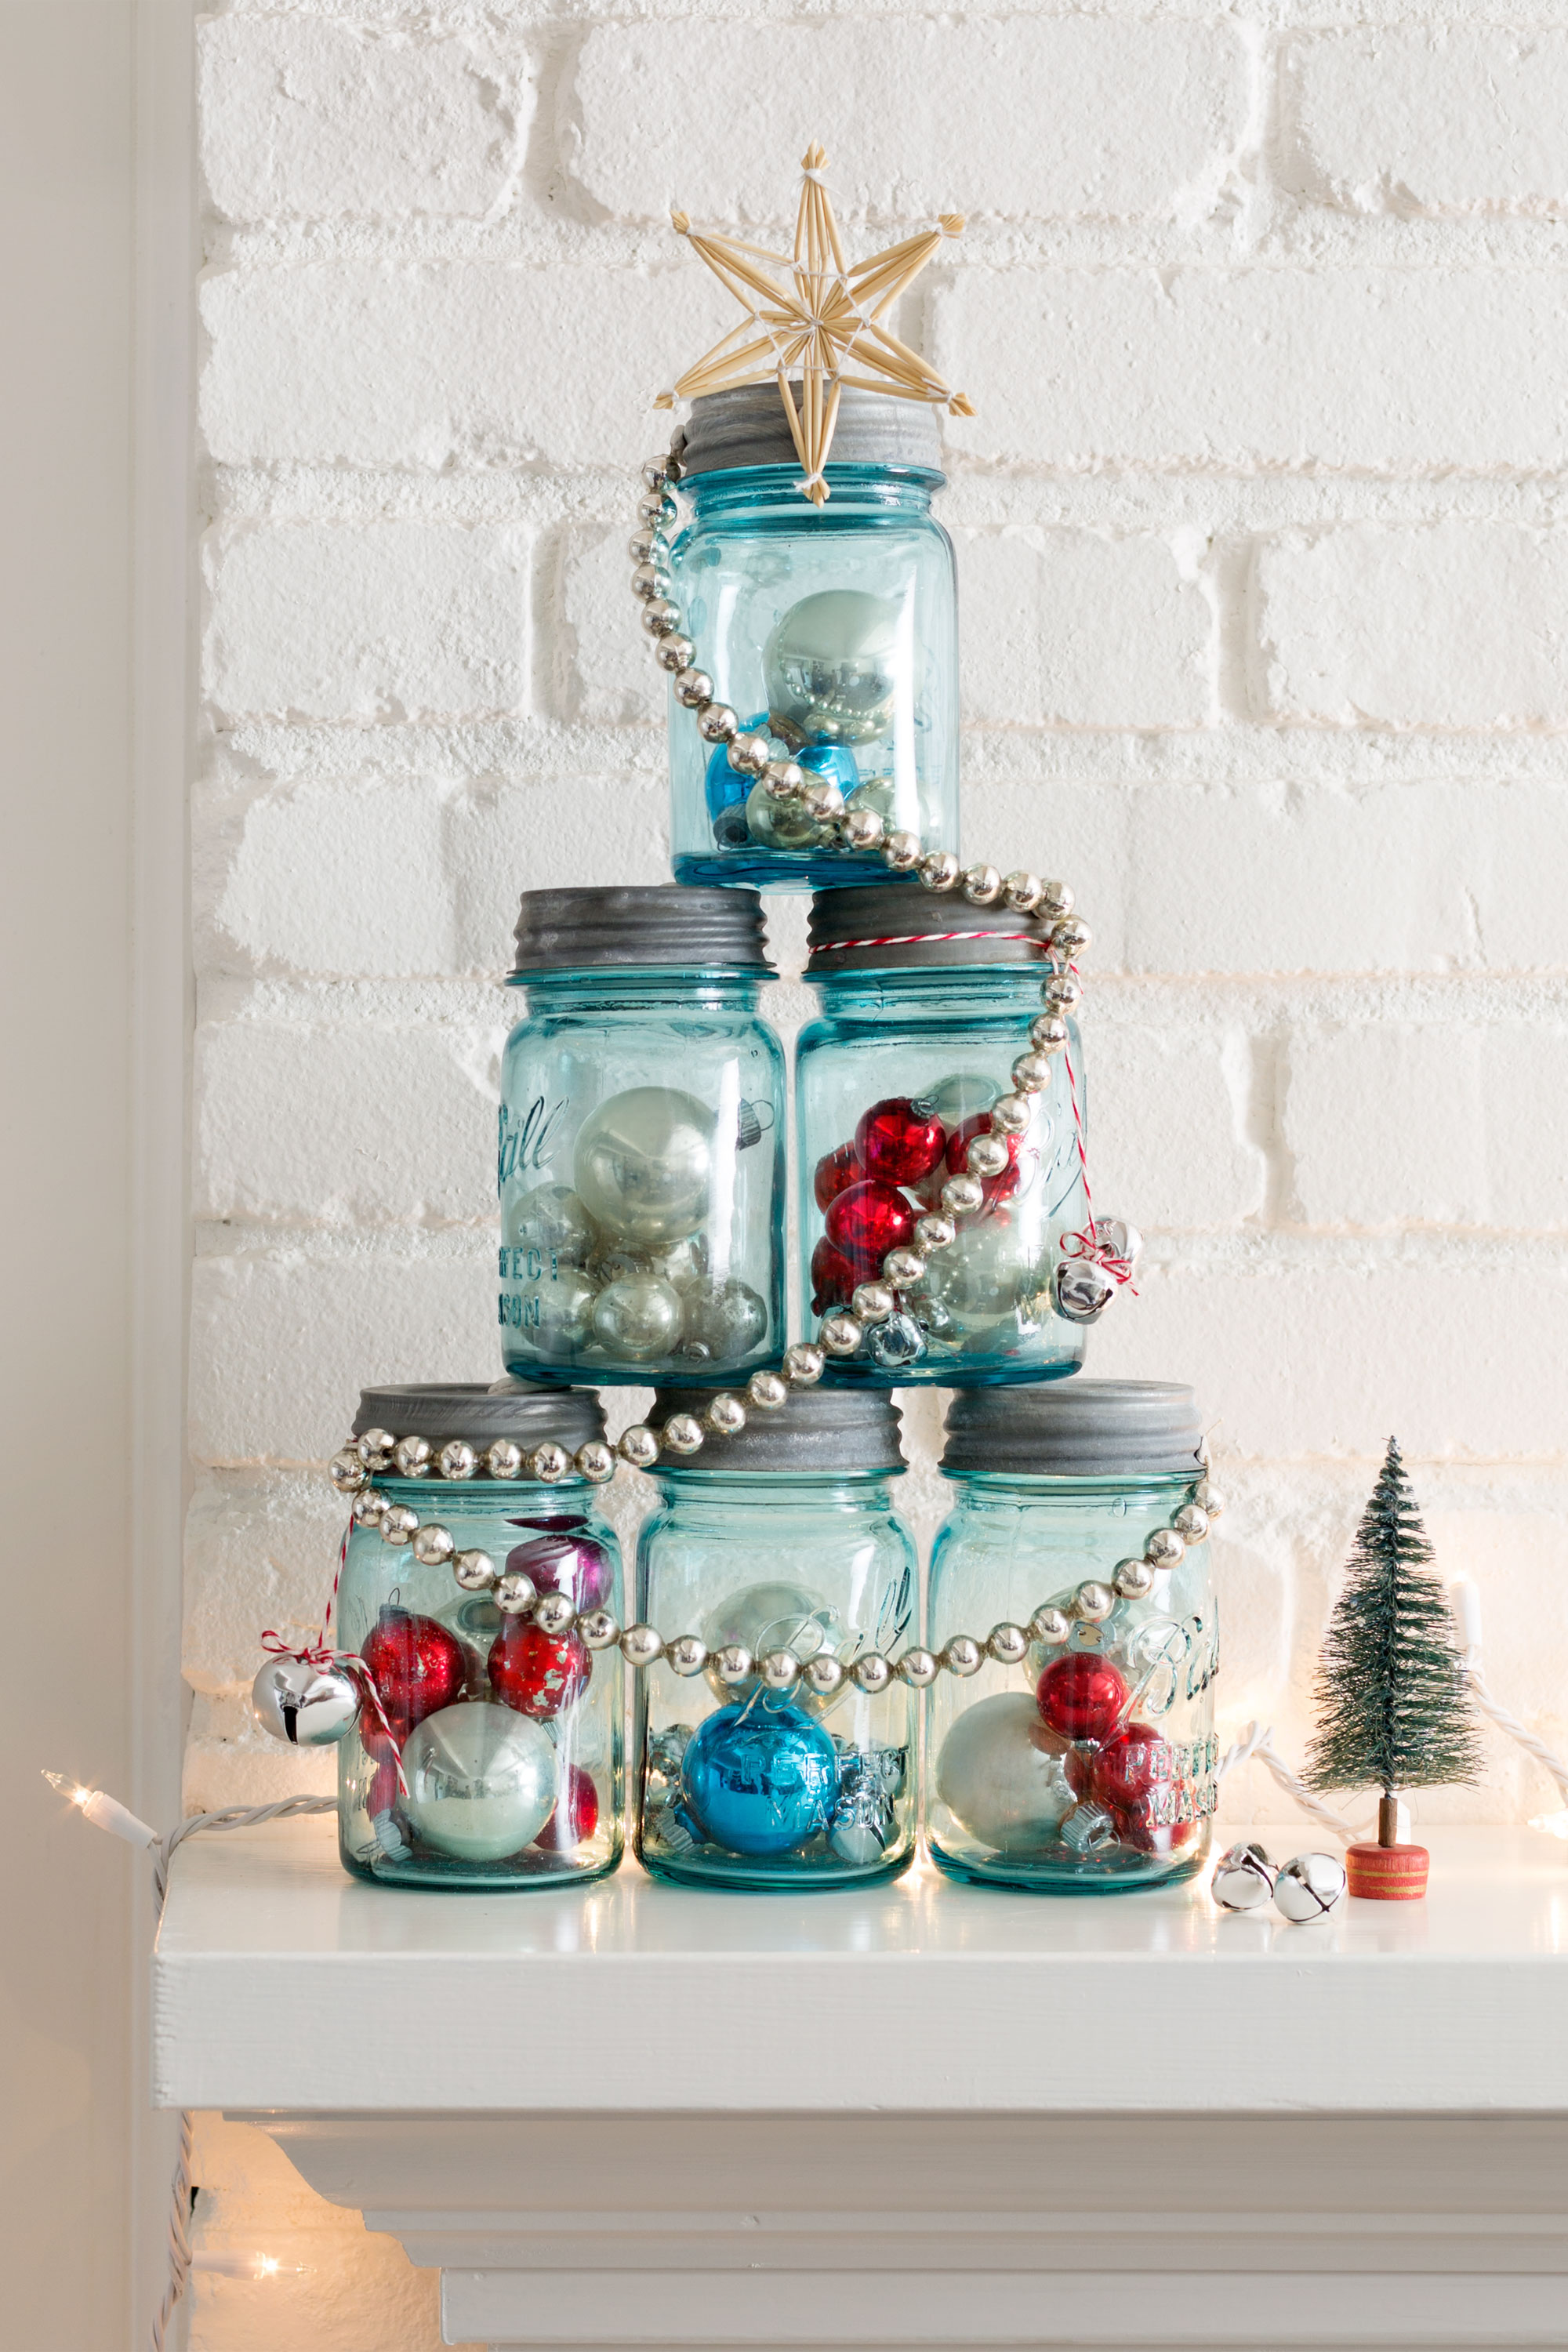 37 diy homemade christmas decorations christmas decor for Christmas decorations to make at home with the kids